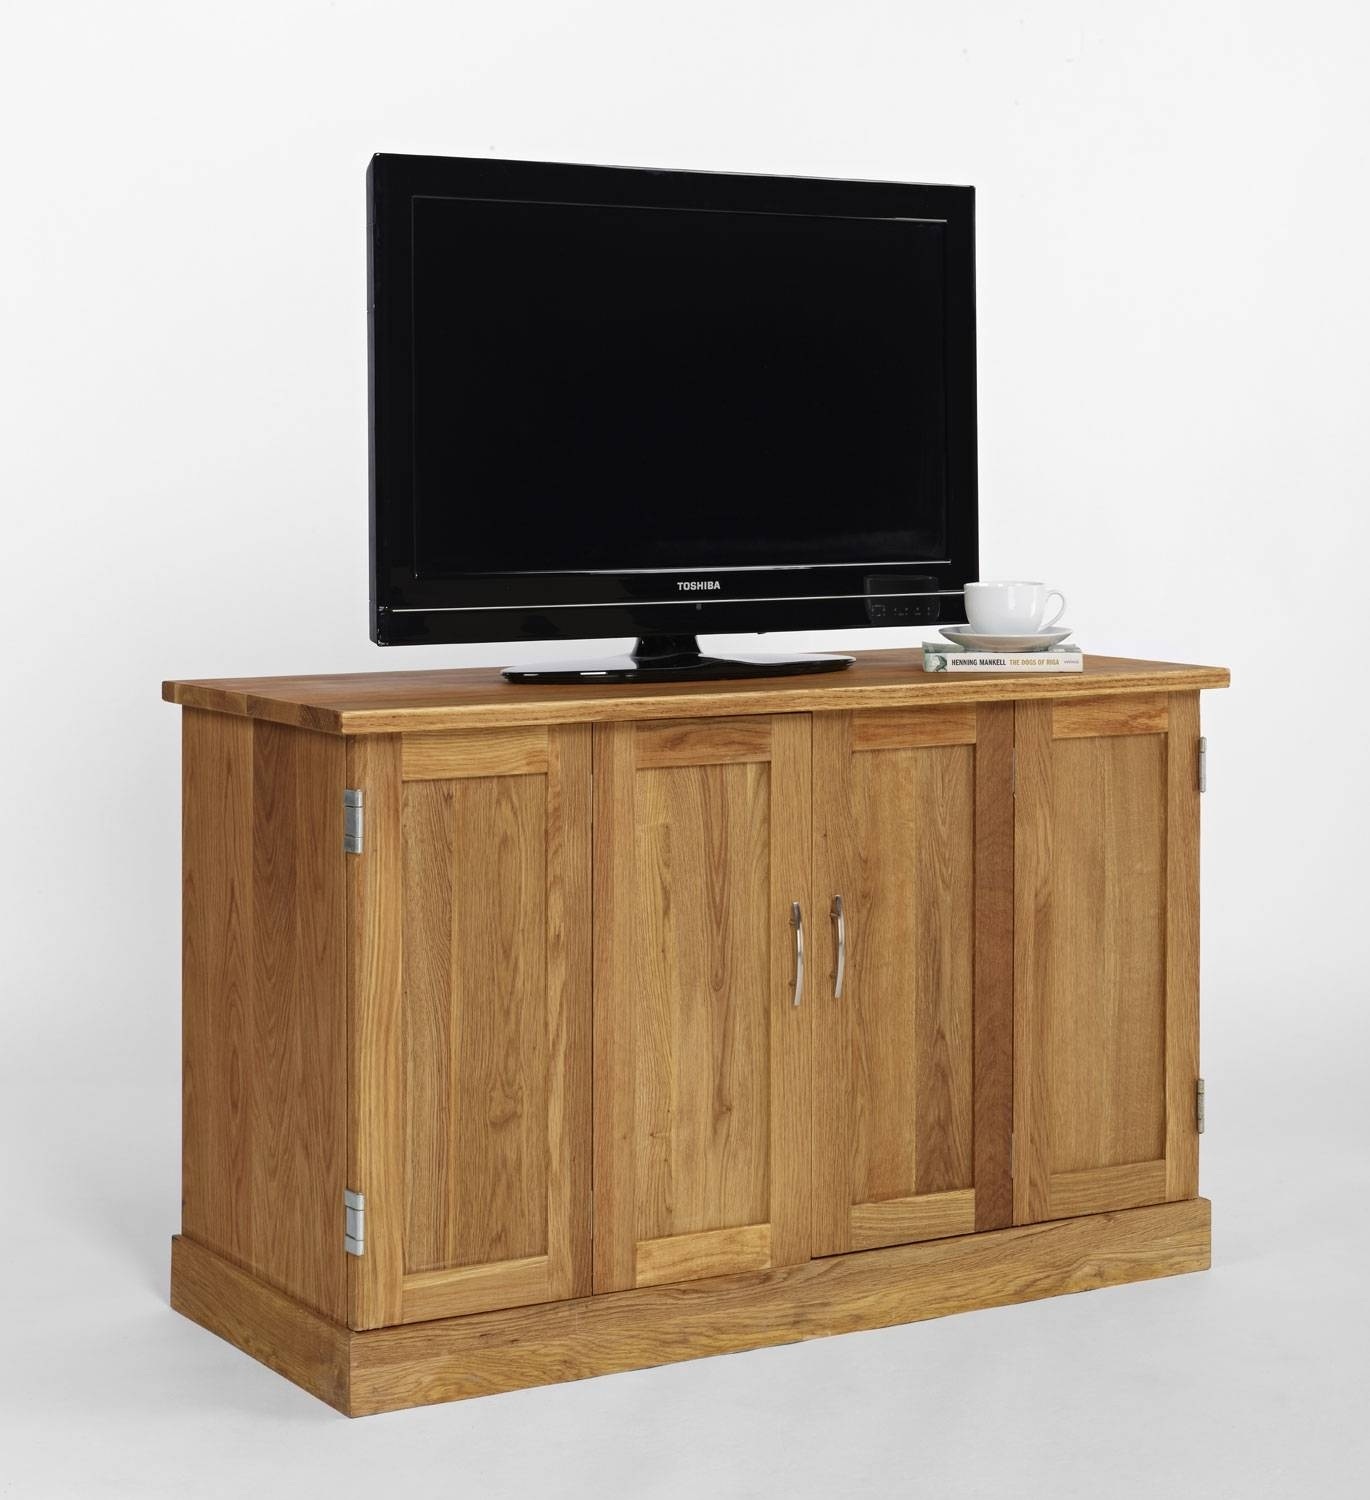 Brooklyn Contemporary Oak Widescreen Tv Cabinet regarding Widescreen Tv Cabinets (Image 4 of 15)